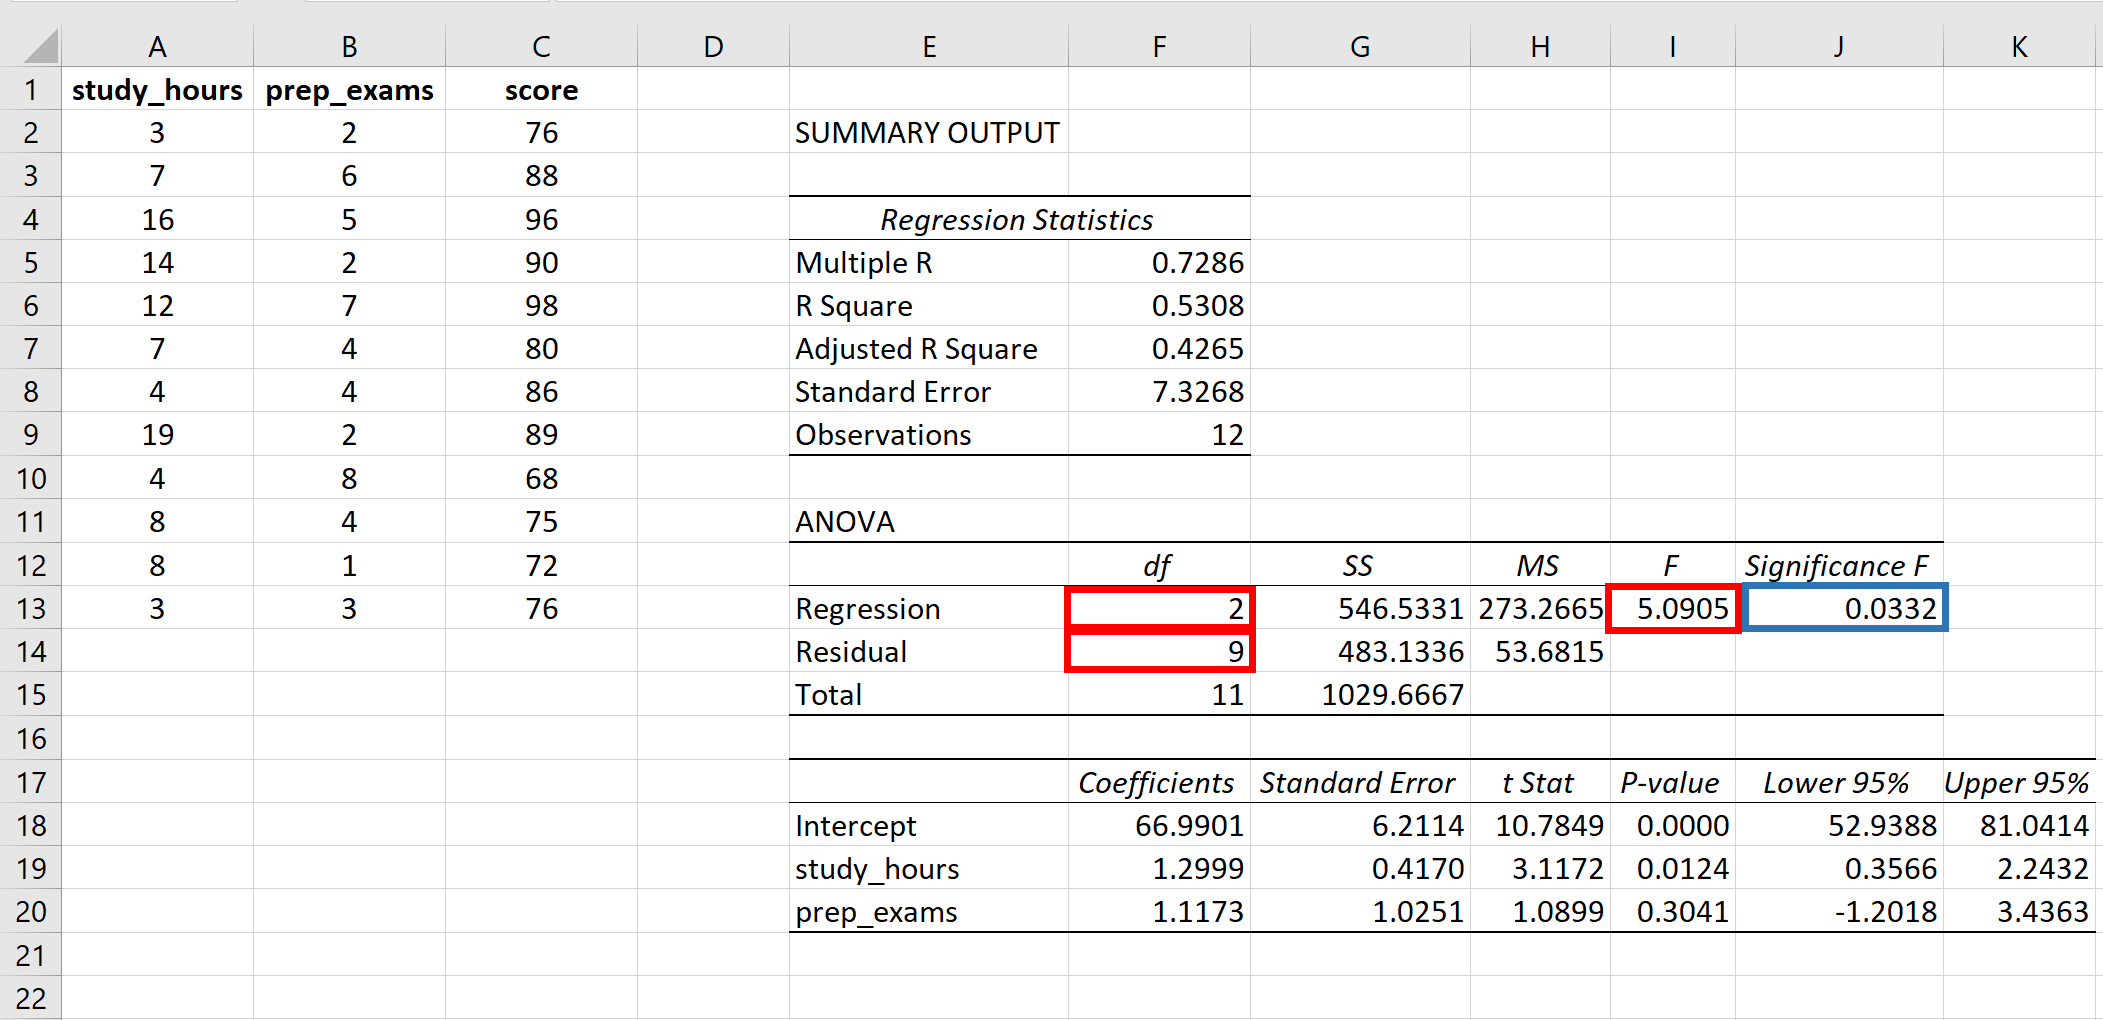 P-value of F-statistic in Excel